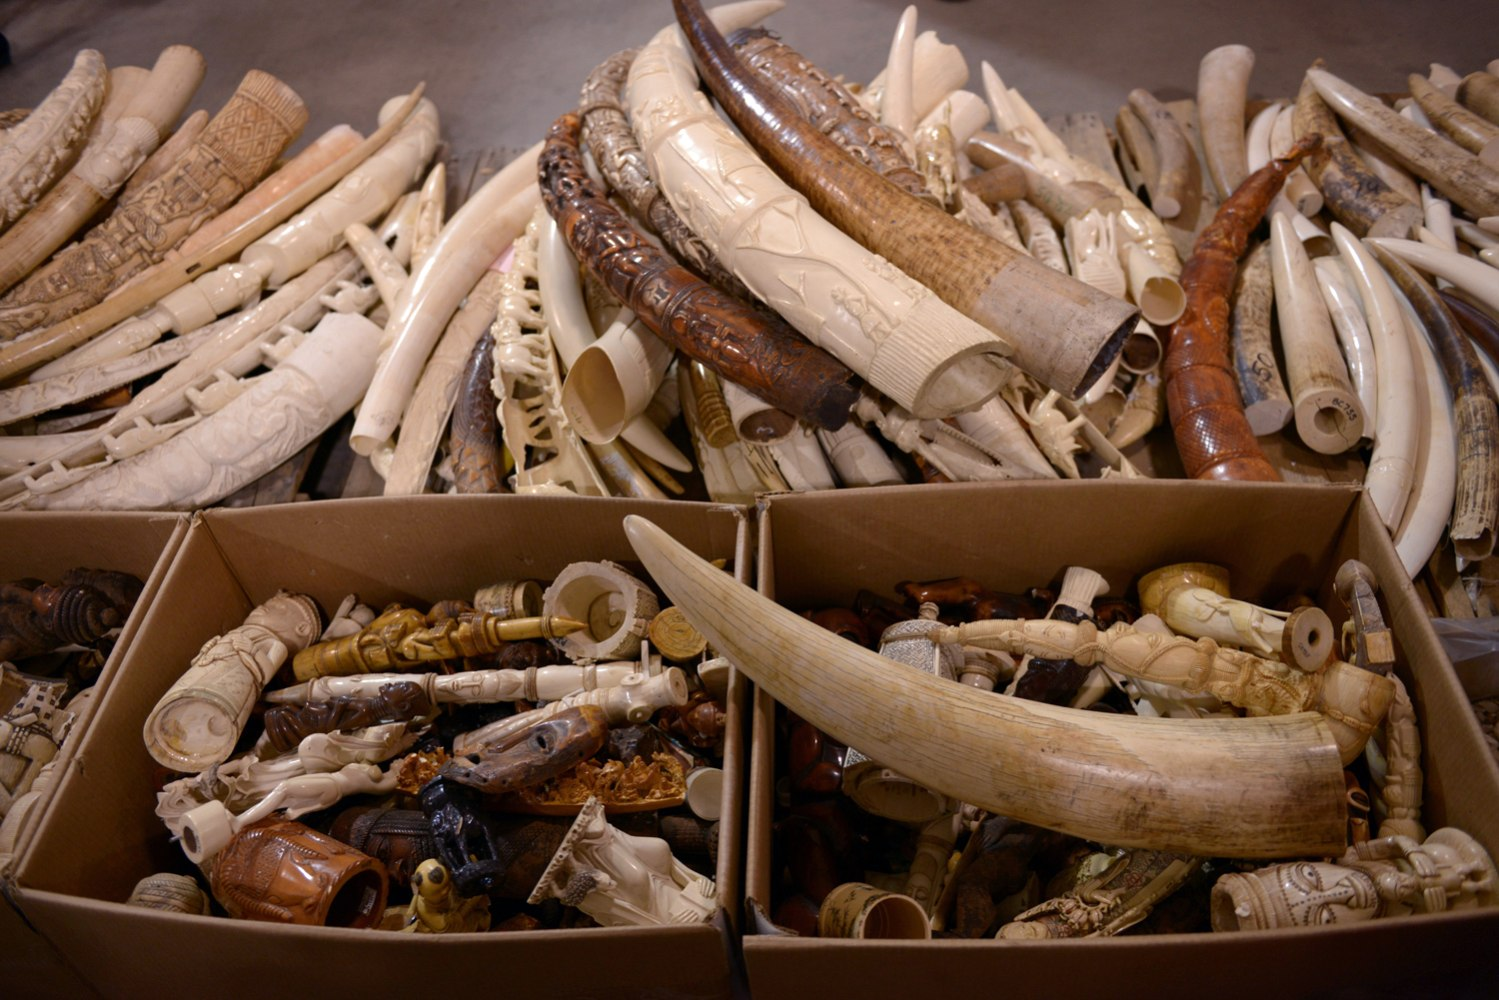 US crushes 6 tons of illegal ivory to send message to ...